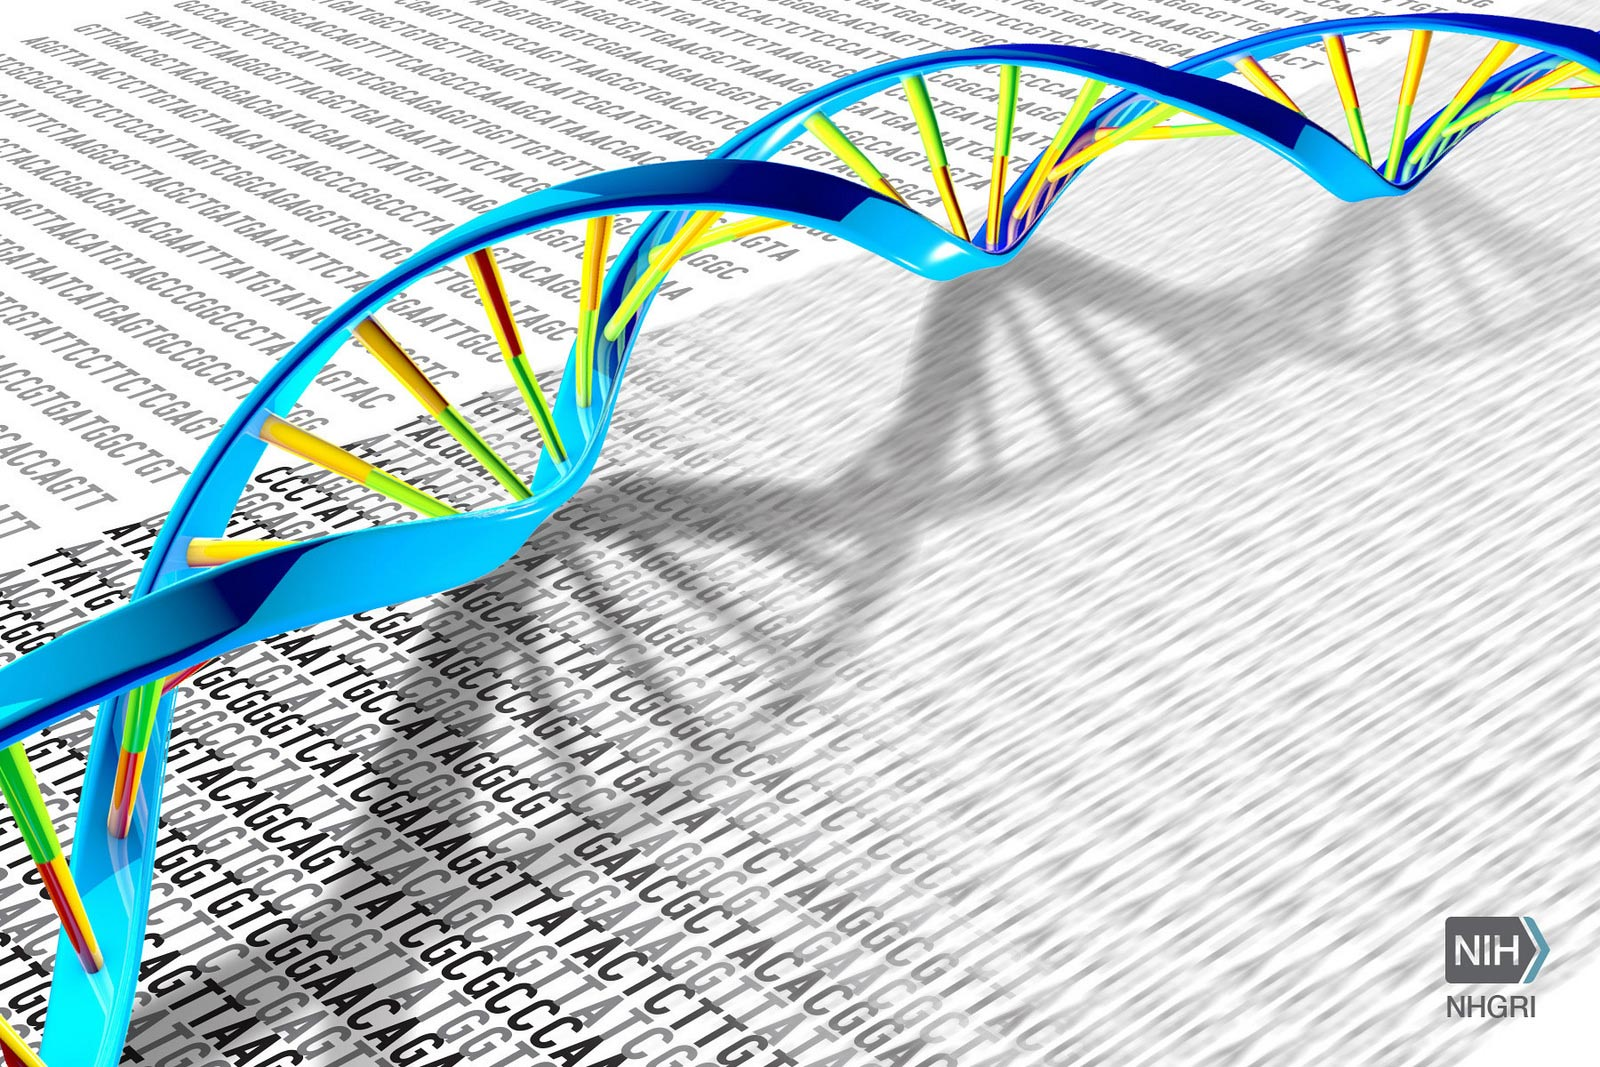 Landmark Study: Sequencing of 64 Full Human Genomes to Better Capture Genetic Diversity - SciTechDaily